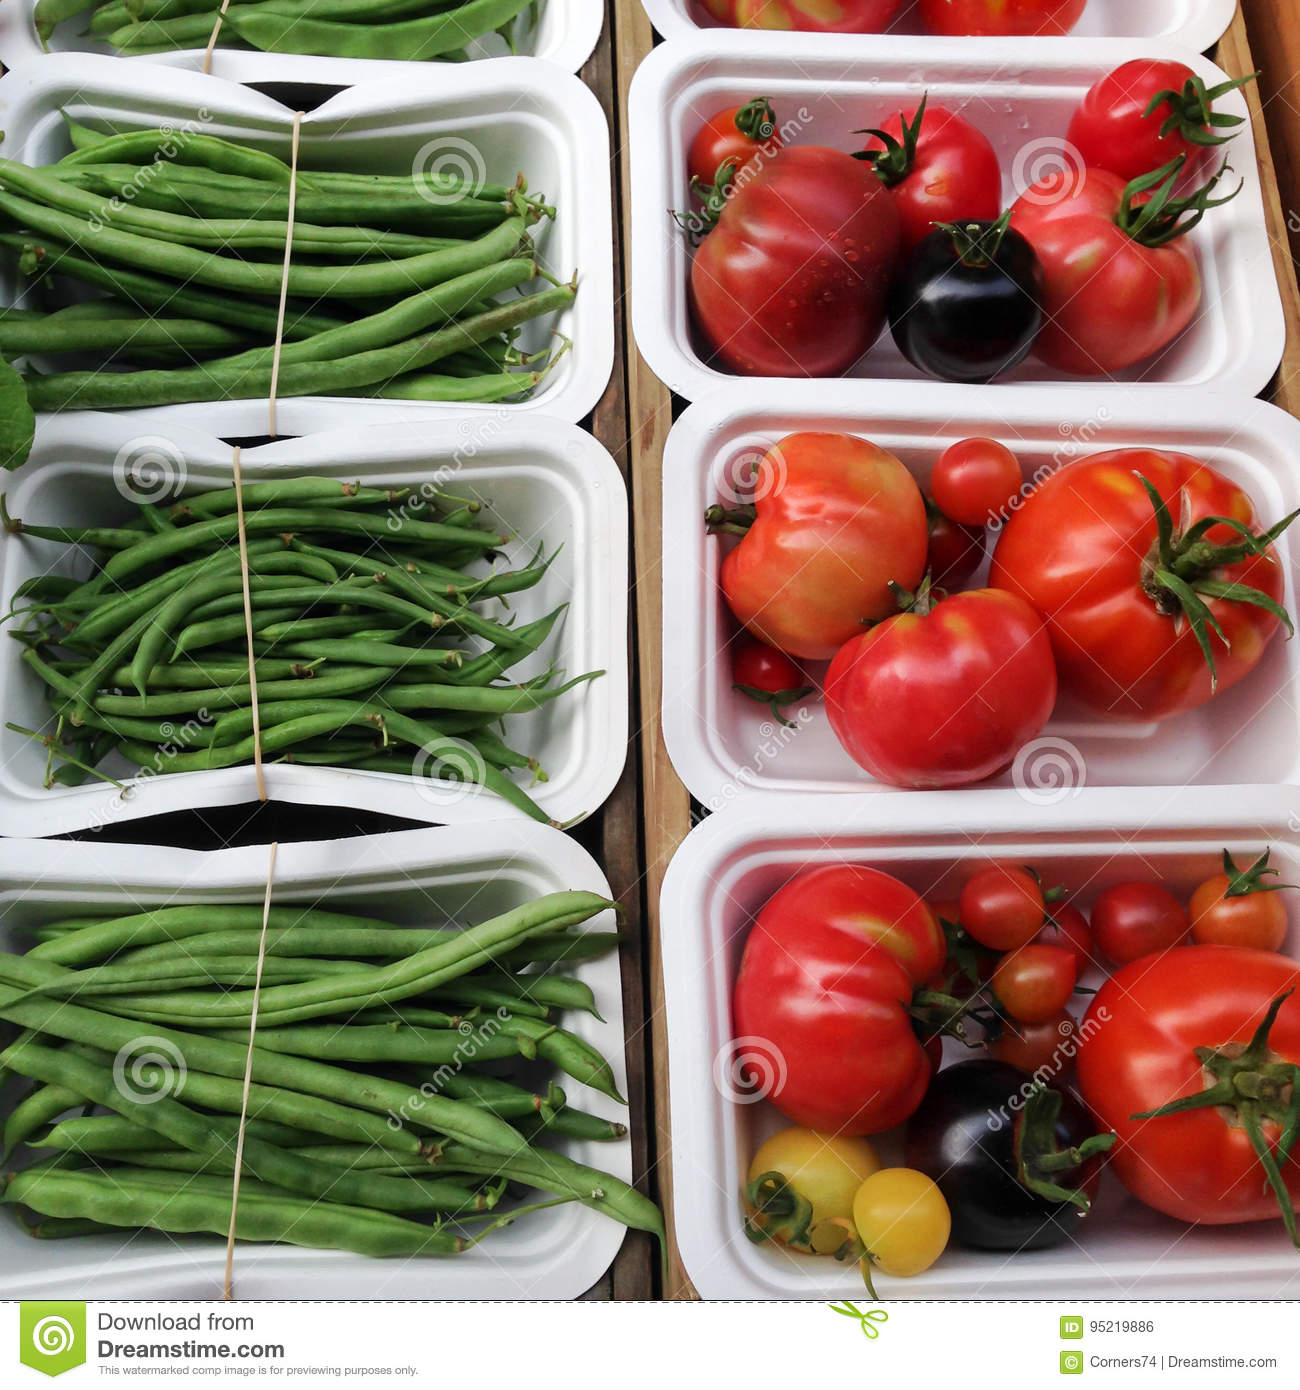 Organic Tomatoes And Green French Beans In Compostable Packaging